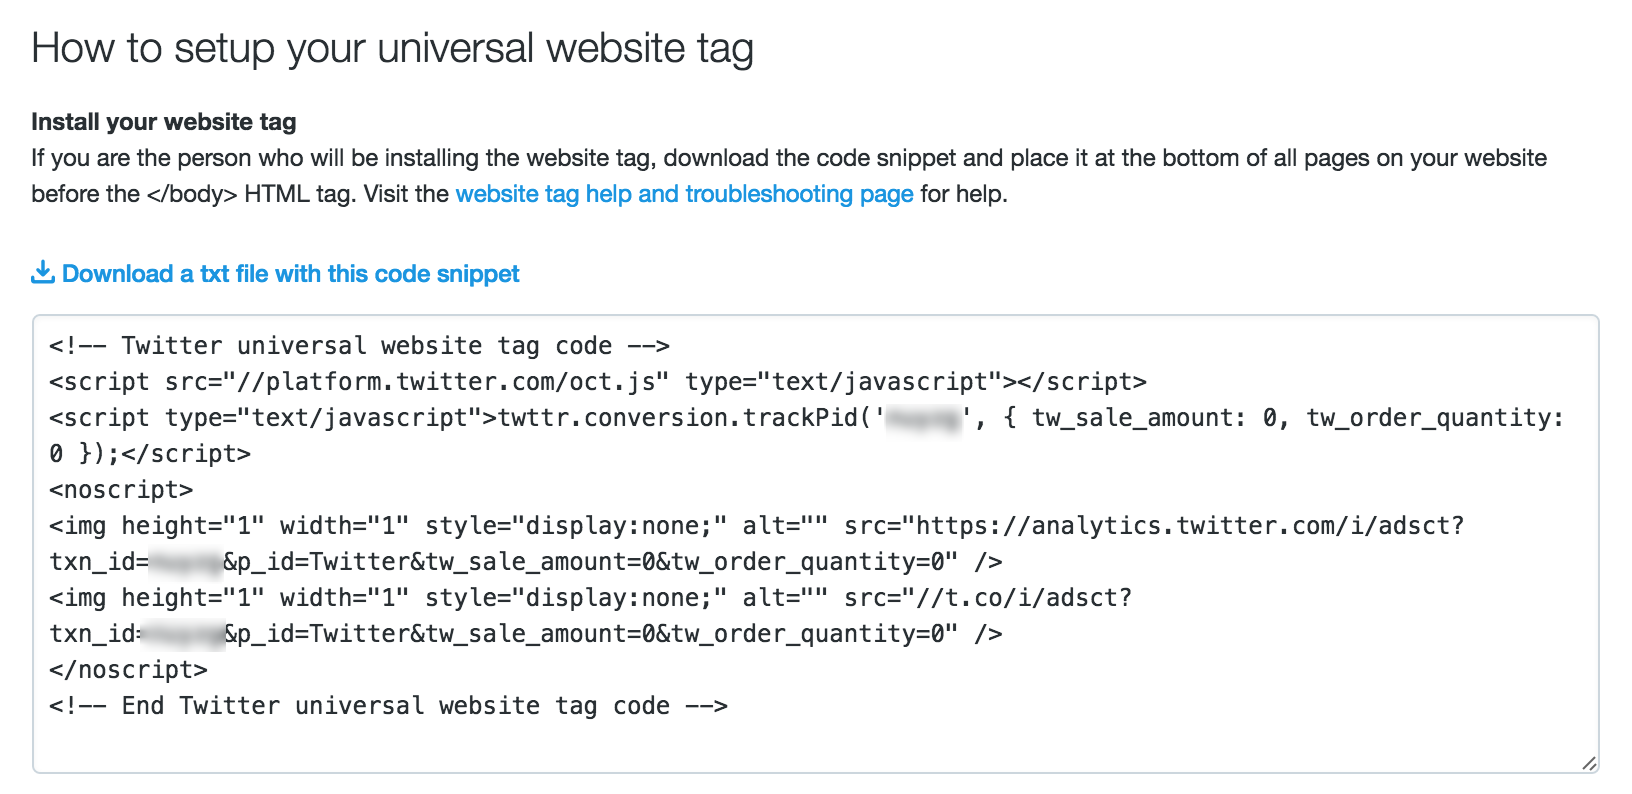 Twitter Tracking Code | The Ultimate Guide to Twitter Ads for Startups and Small Businesses